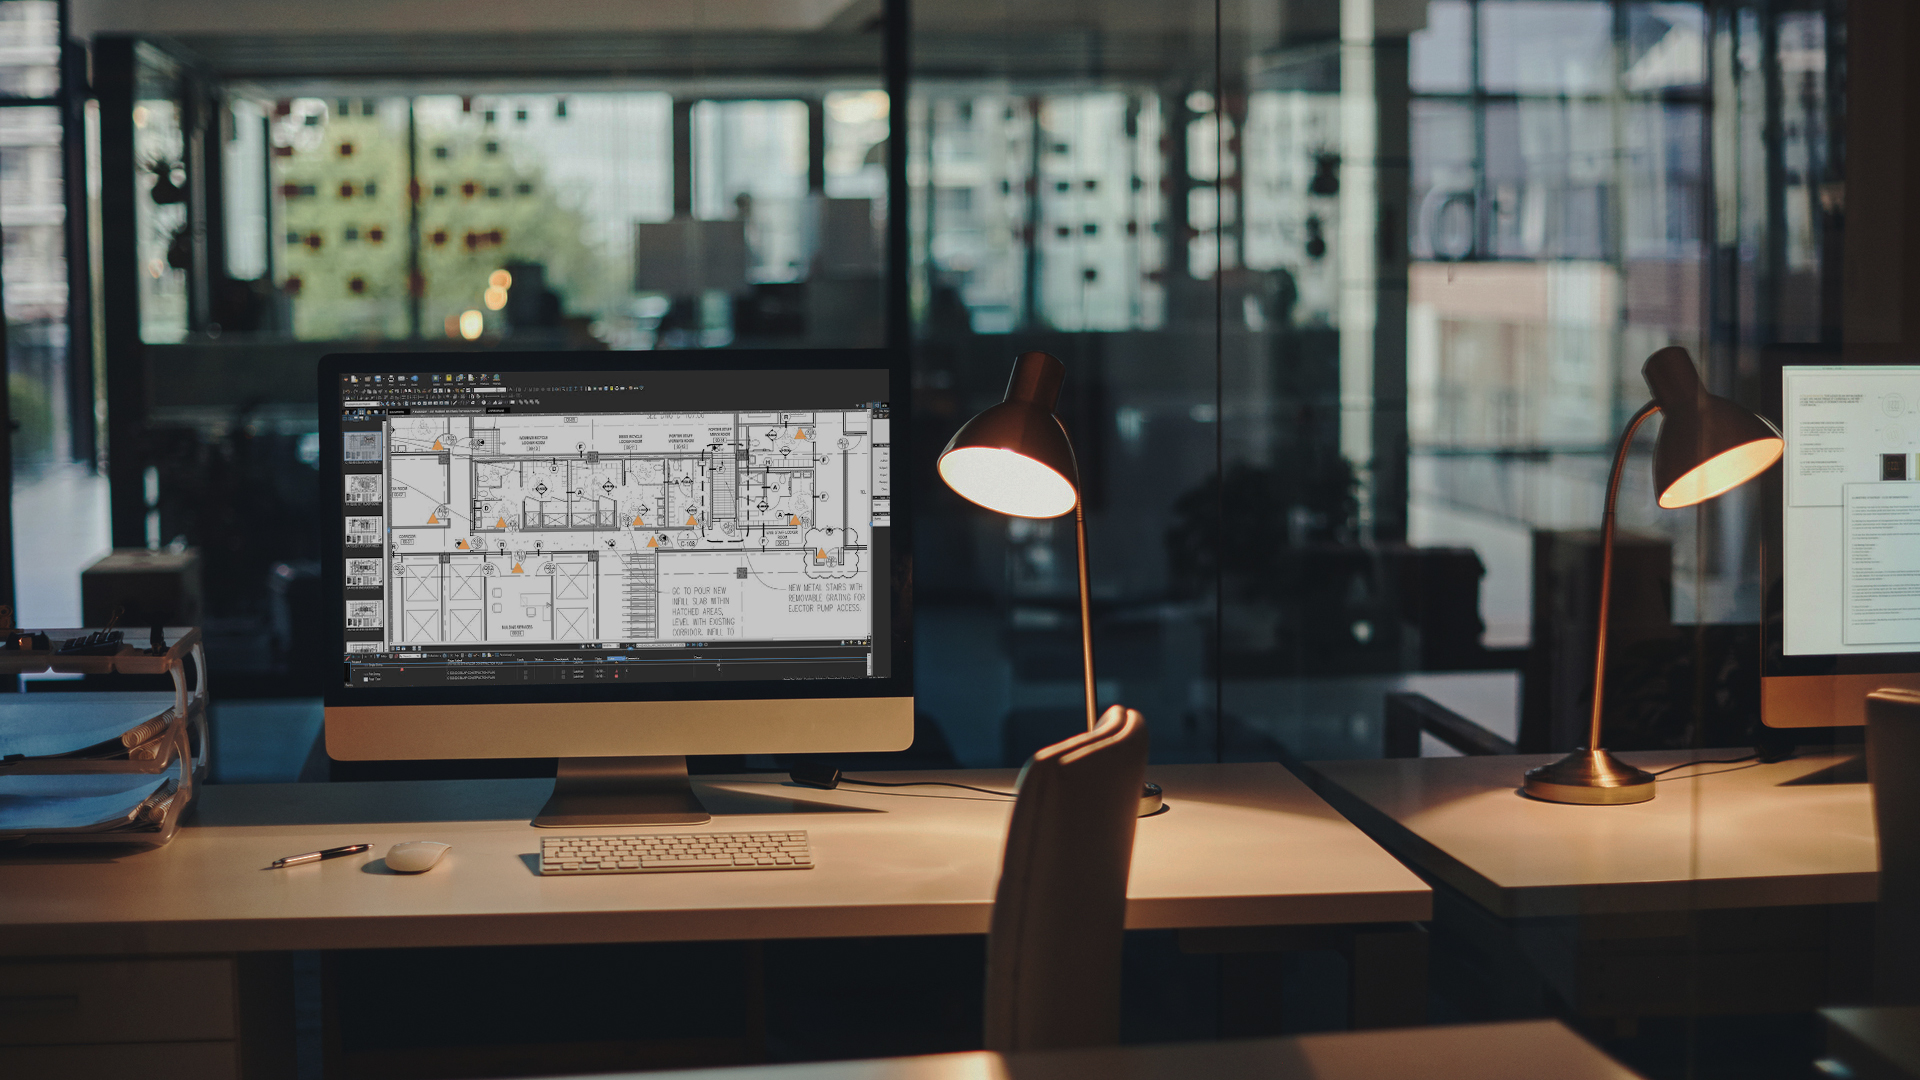 Autocad plans on computer screen in modern office